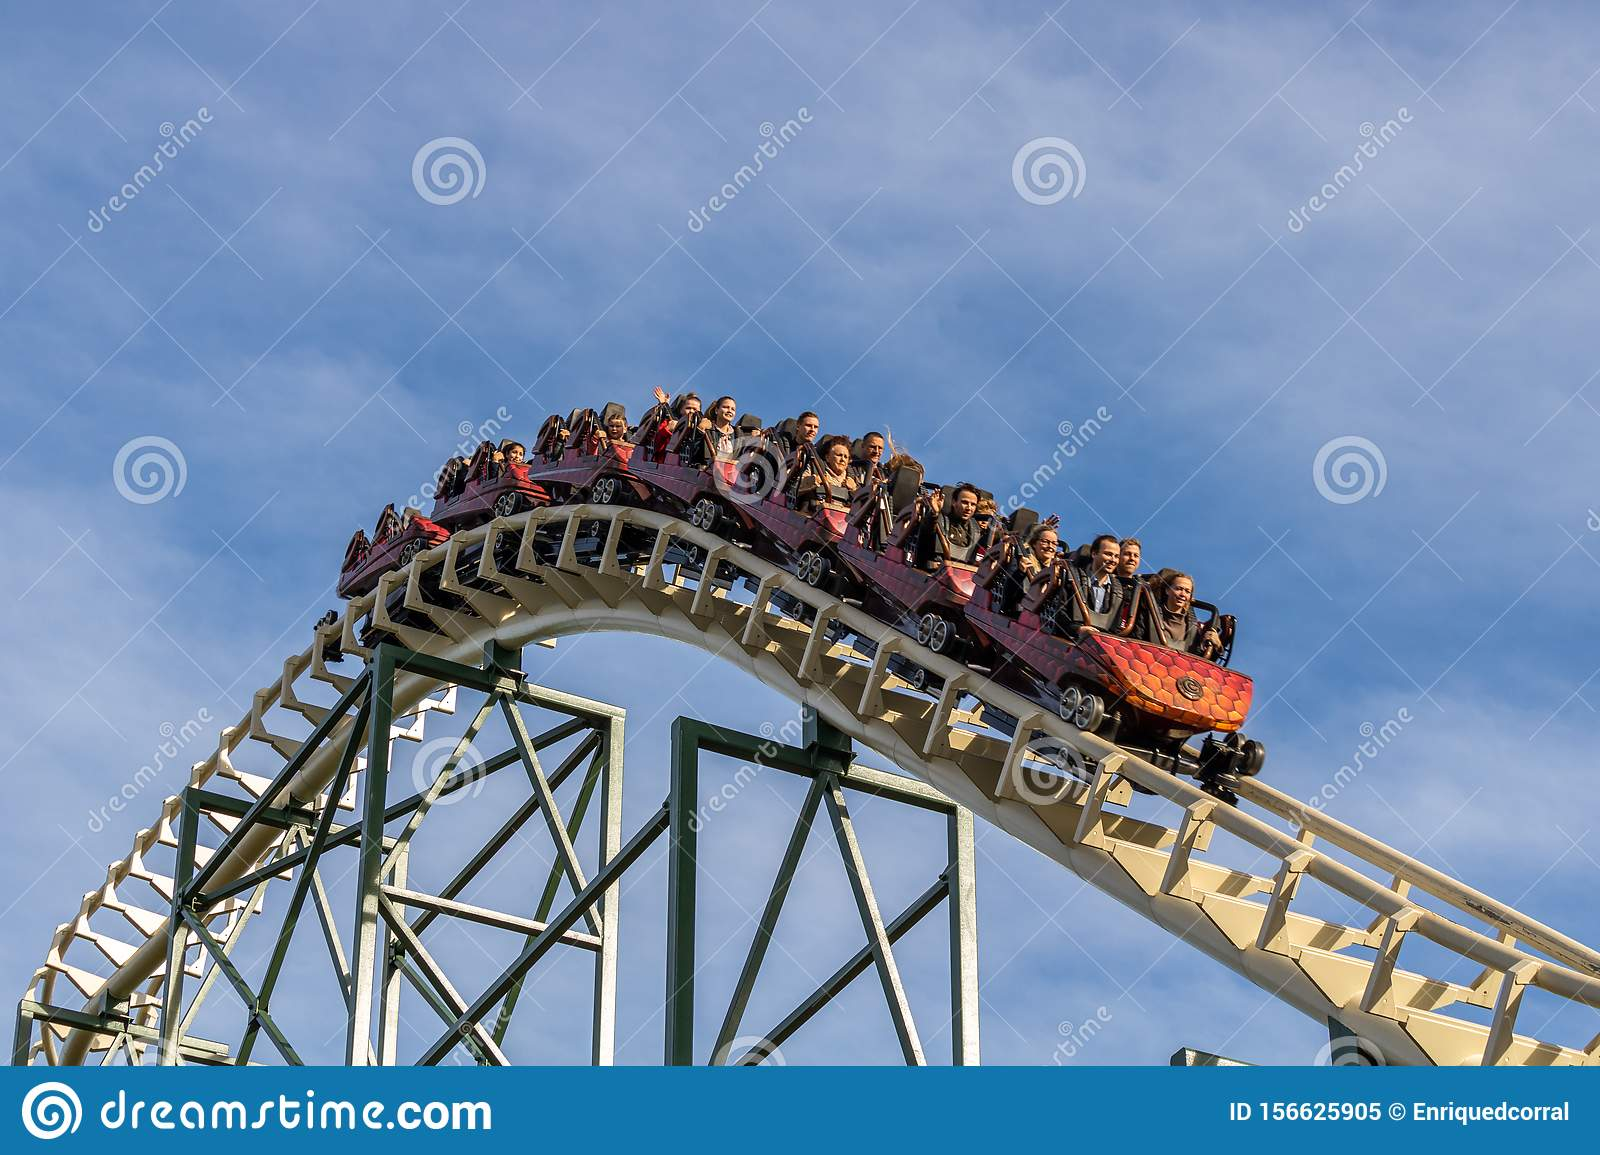 KAATSHEUVEL, The Netherlands. - November 6, 2018: People screaming and having fun in a roller coaster in The Efteling Called: